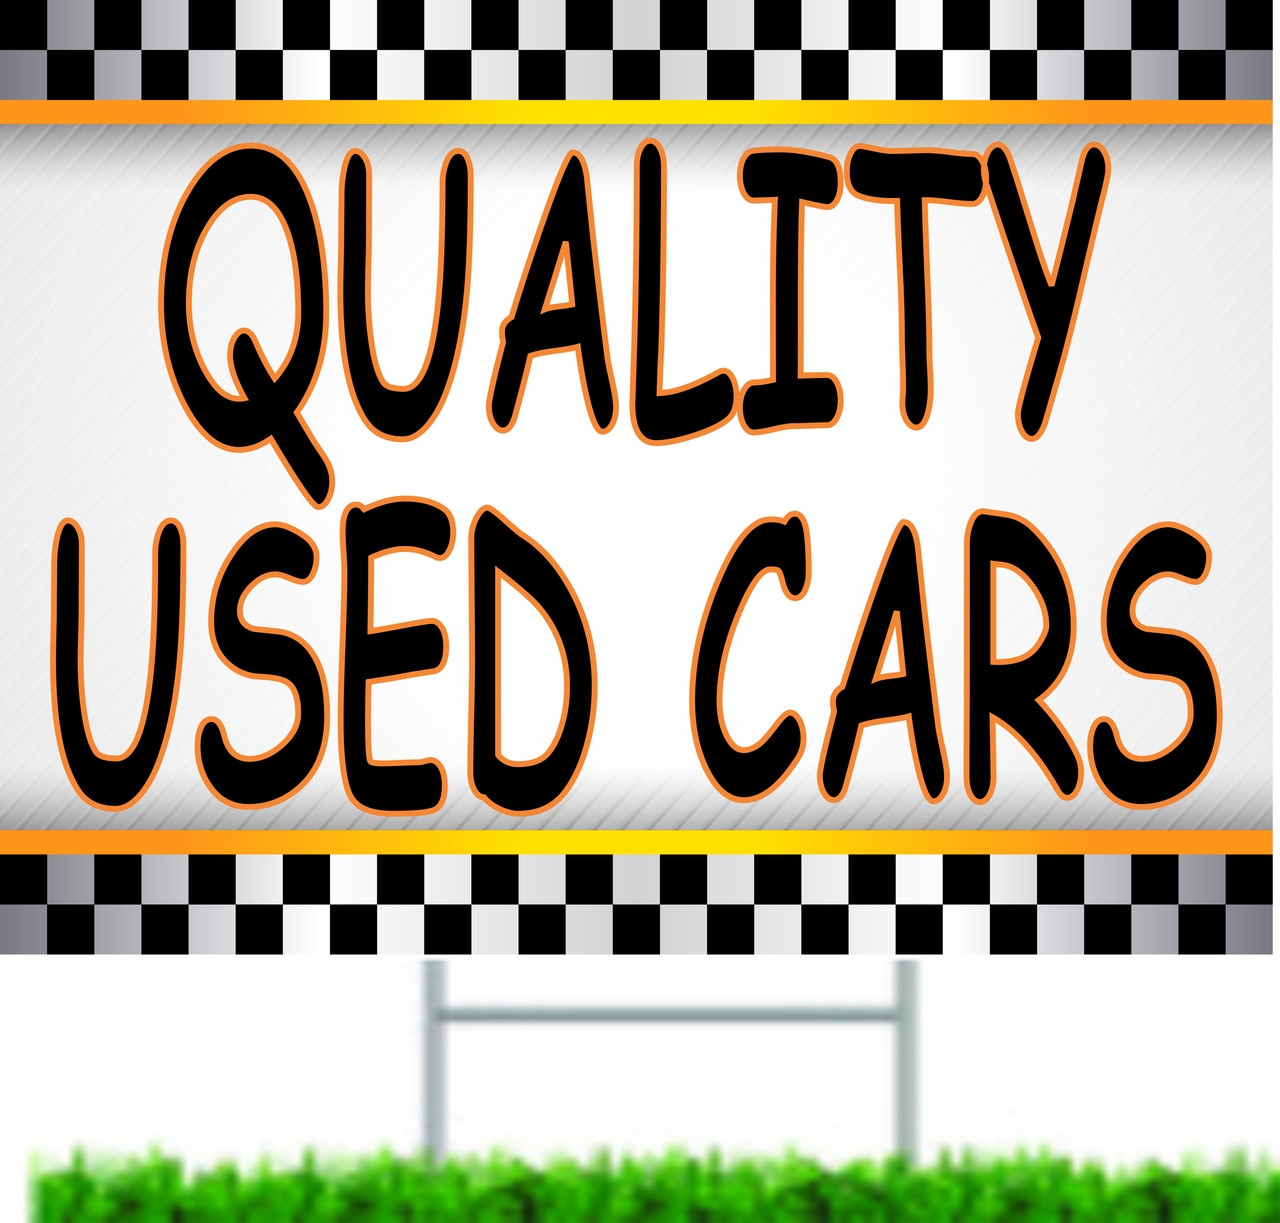 Quality Used Cars Automotive Dealer Yard Signs.